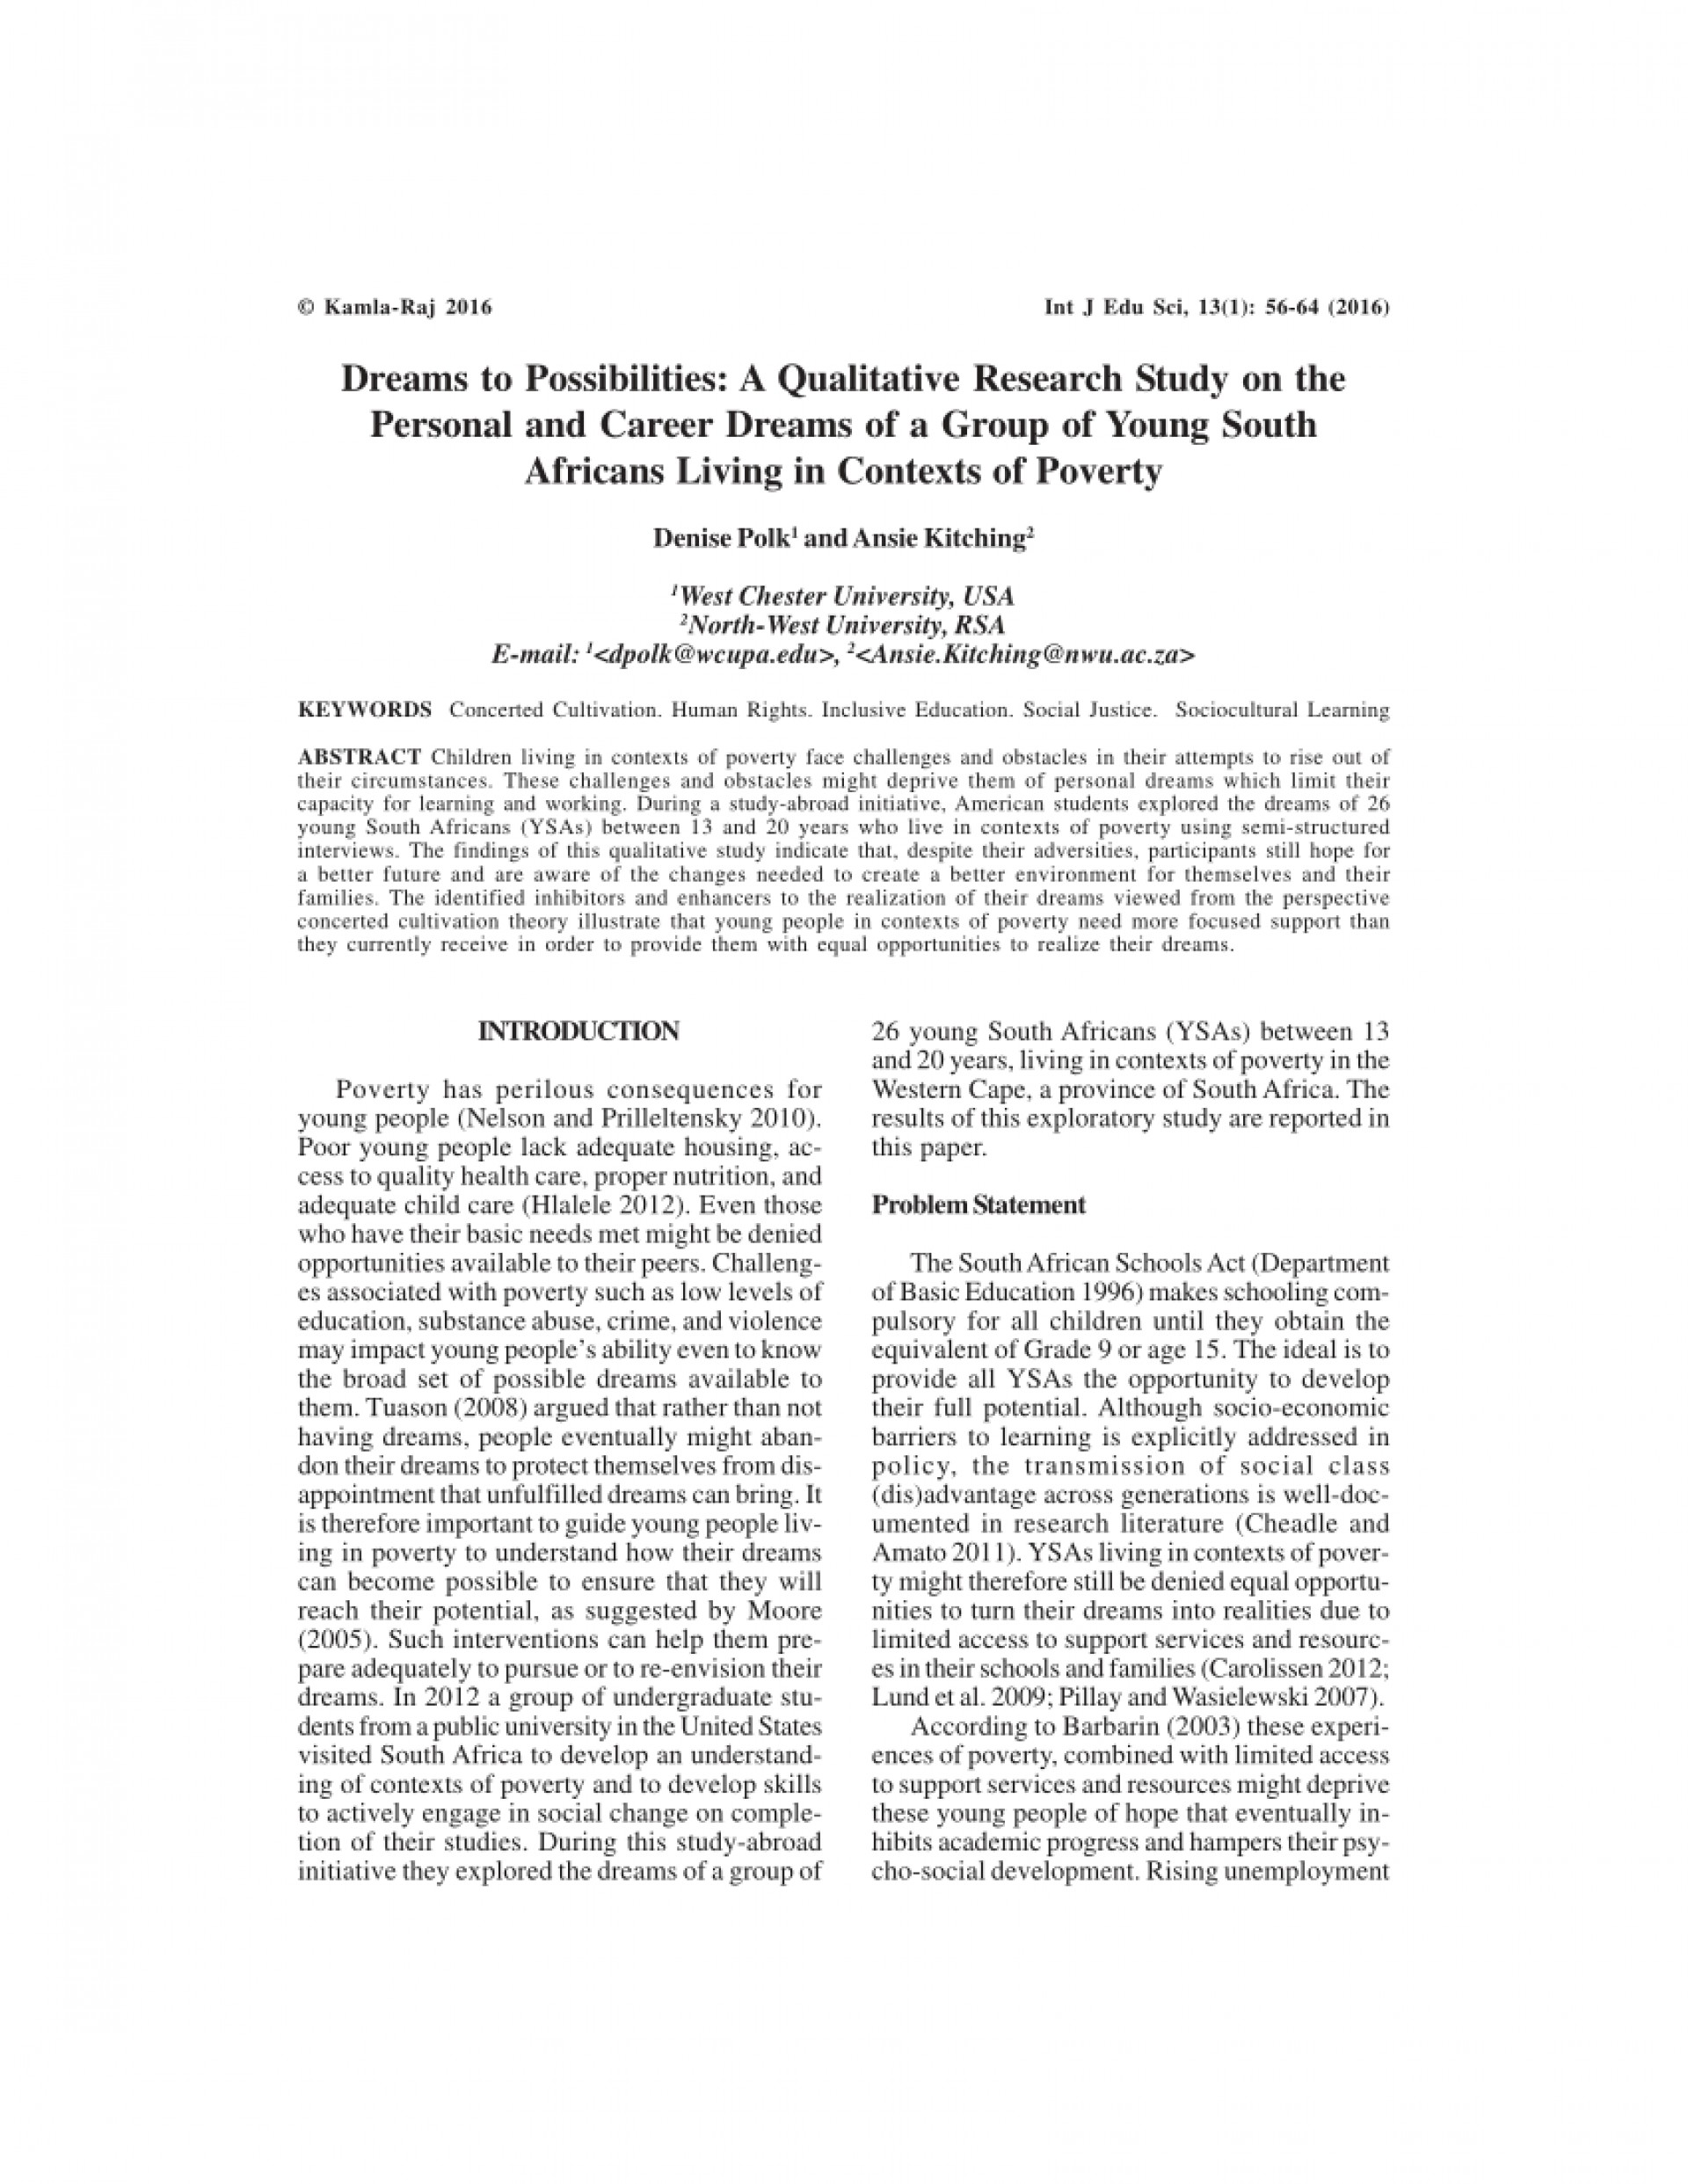 003 Poverty In The Philippines Research Paper Pdf Impressive 1920